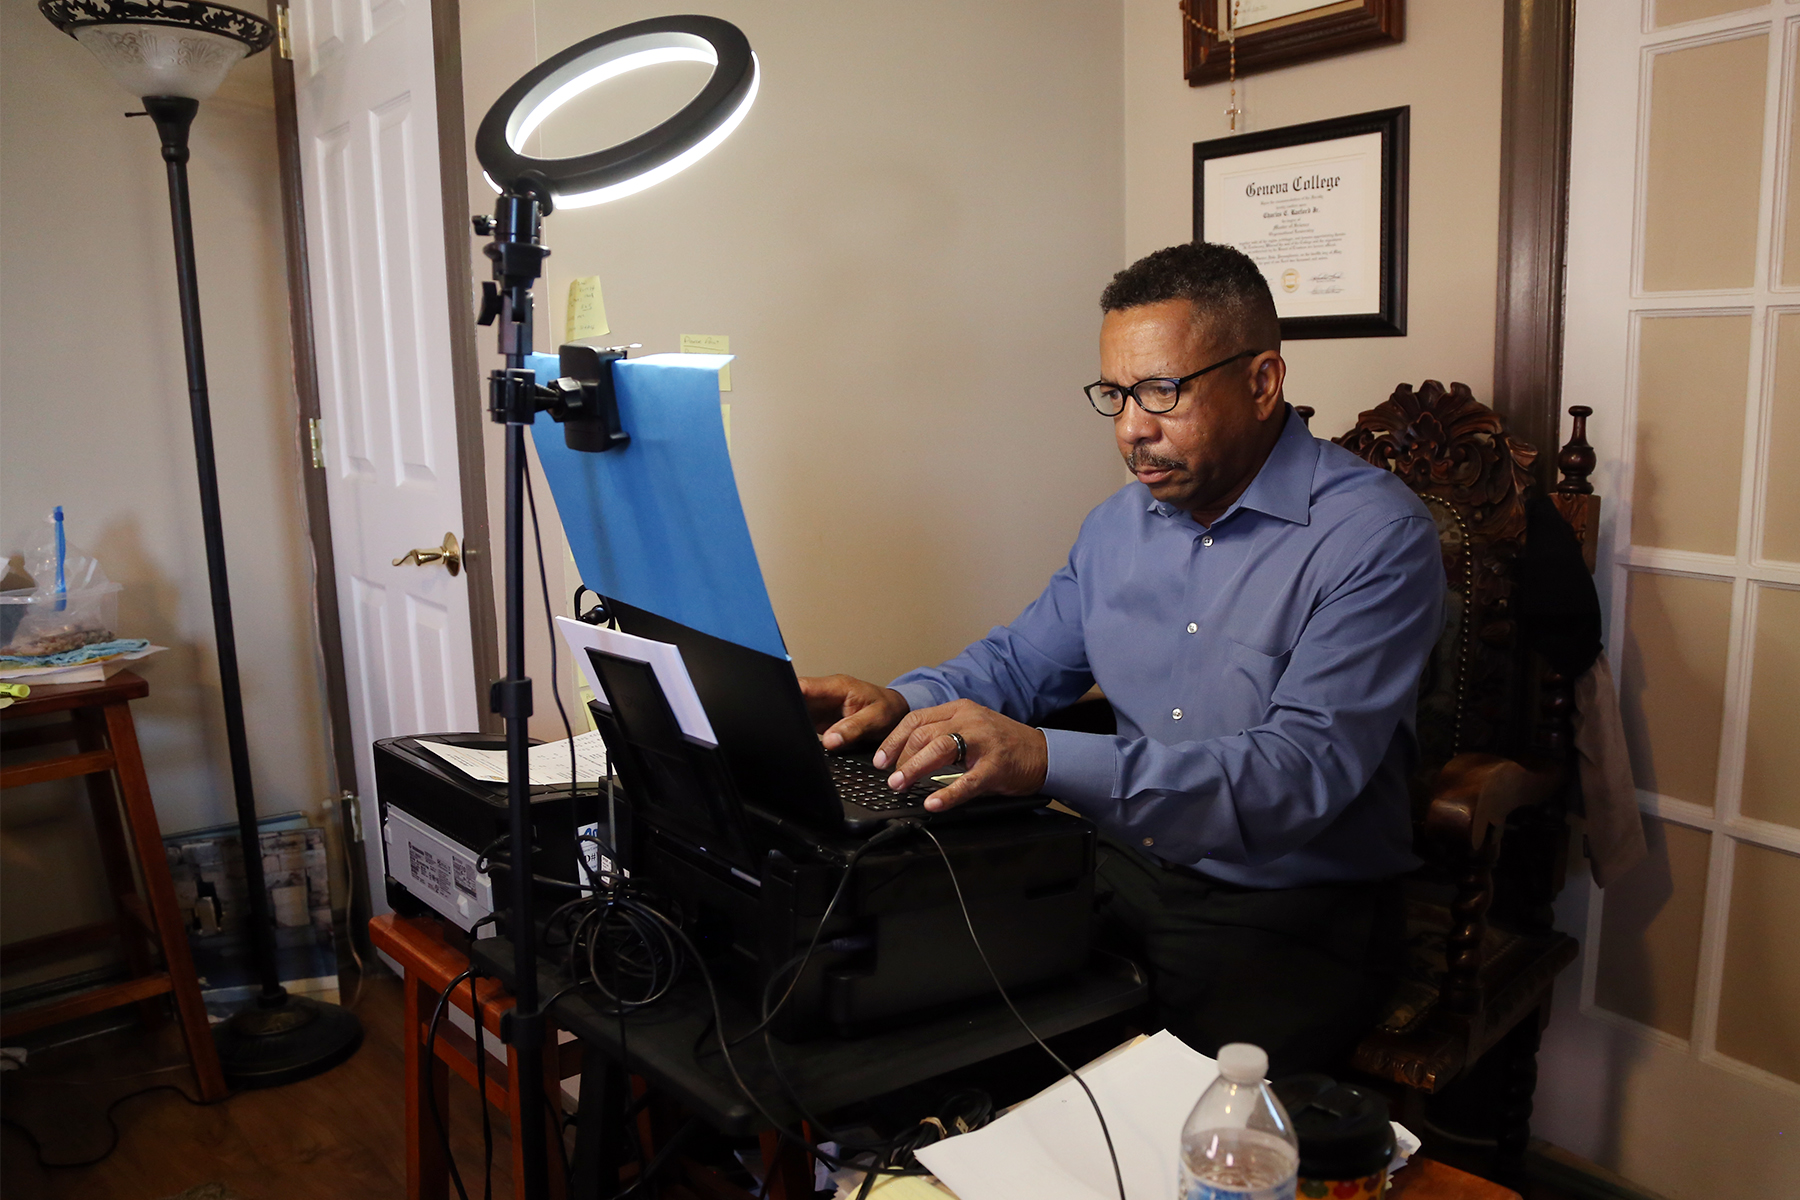 Jody Raeford sits at a desk with an overhead light, typing on a laptop computer.